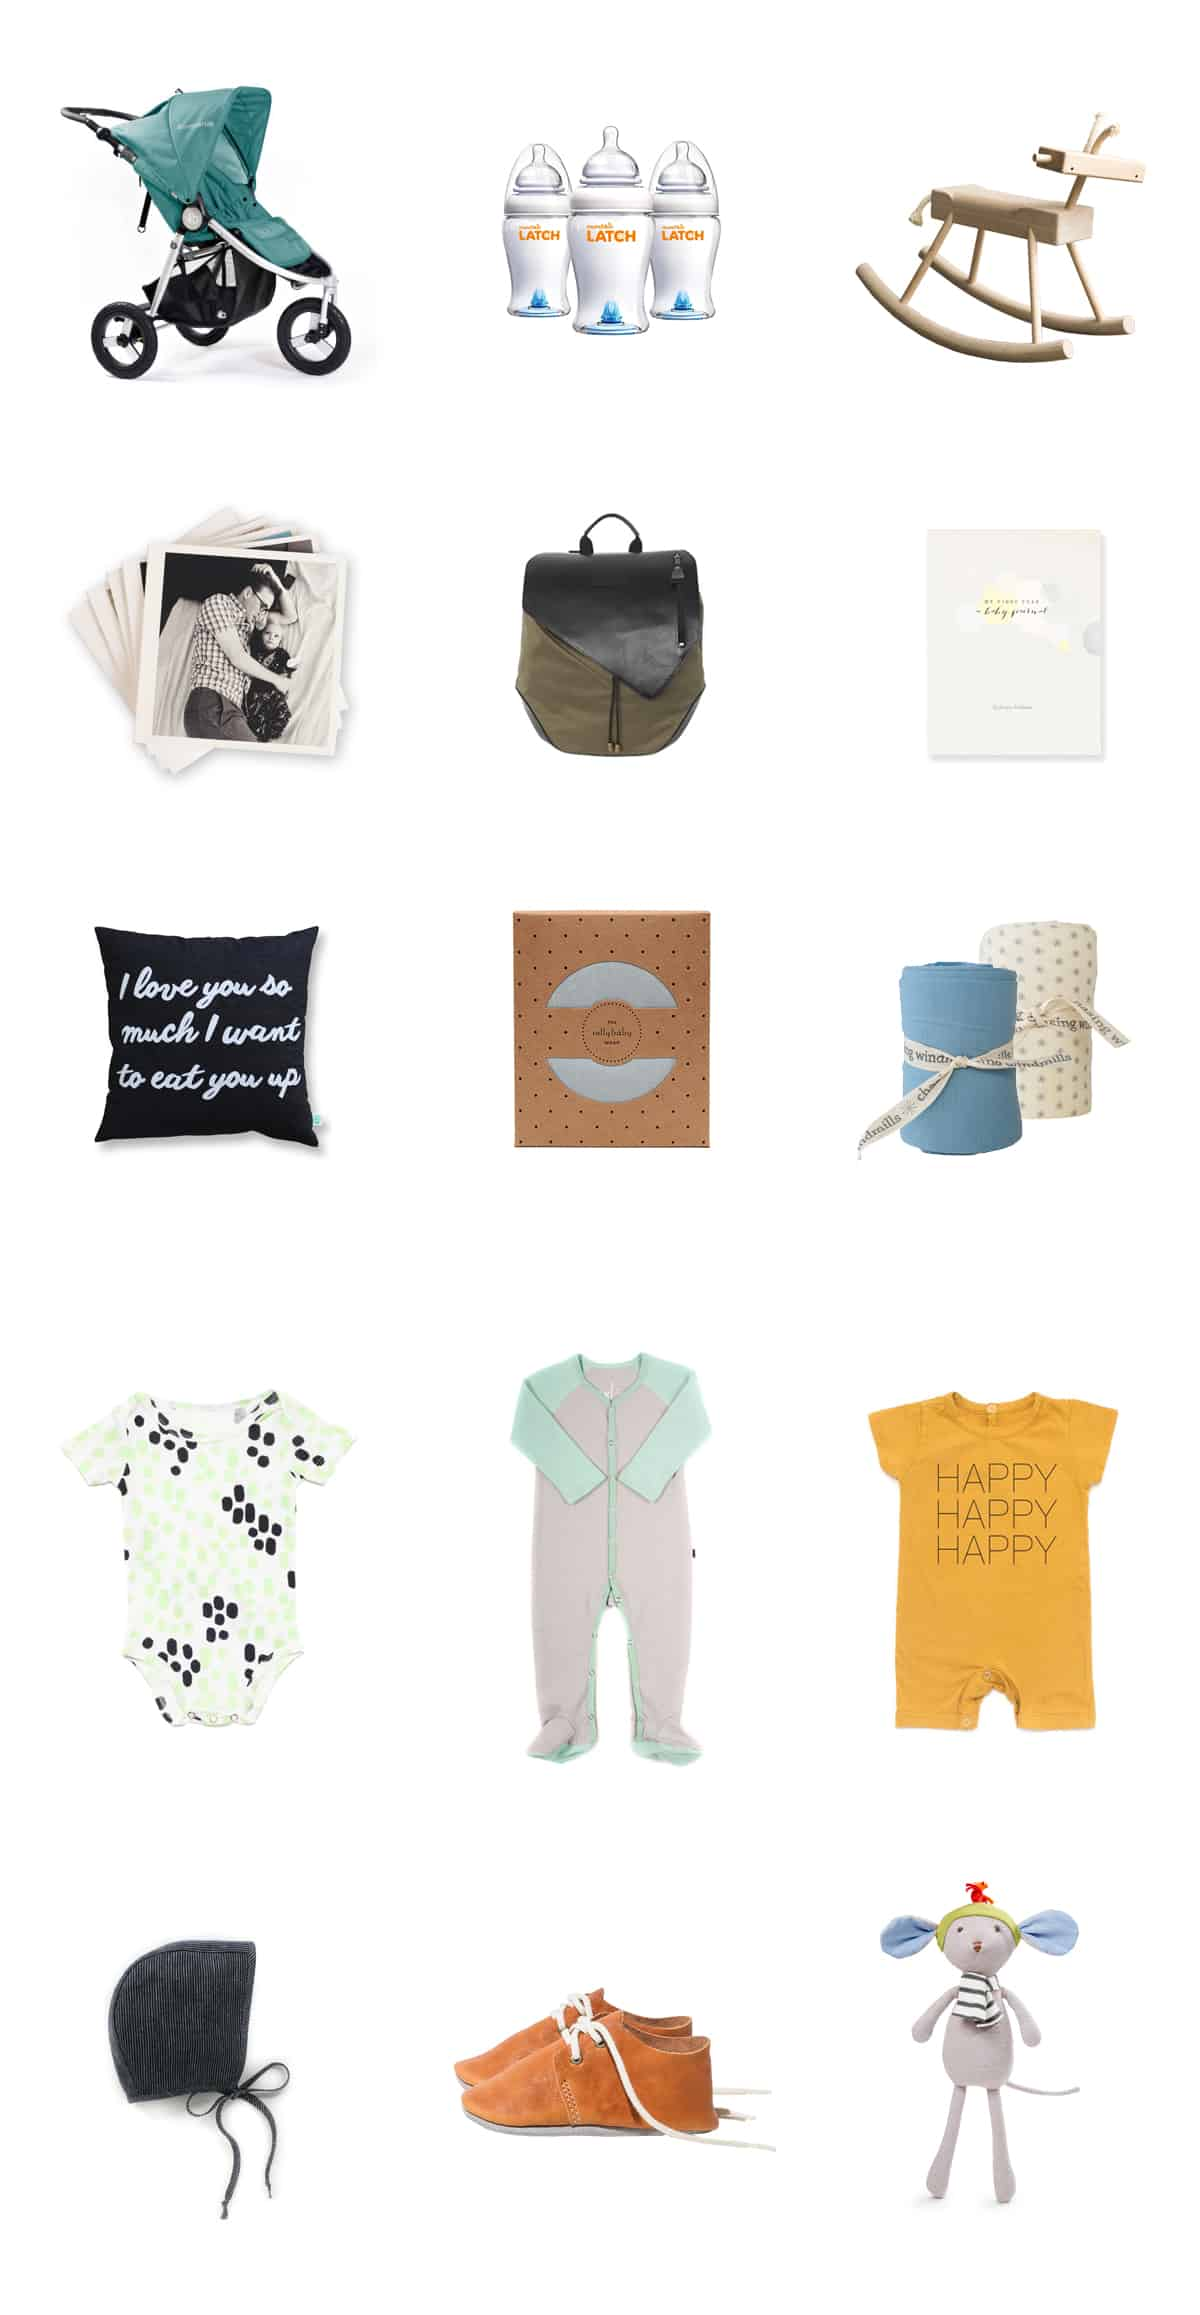 Tiffani Thiessen Mother's Day Giveaway 2016